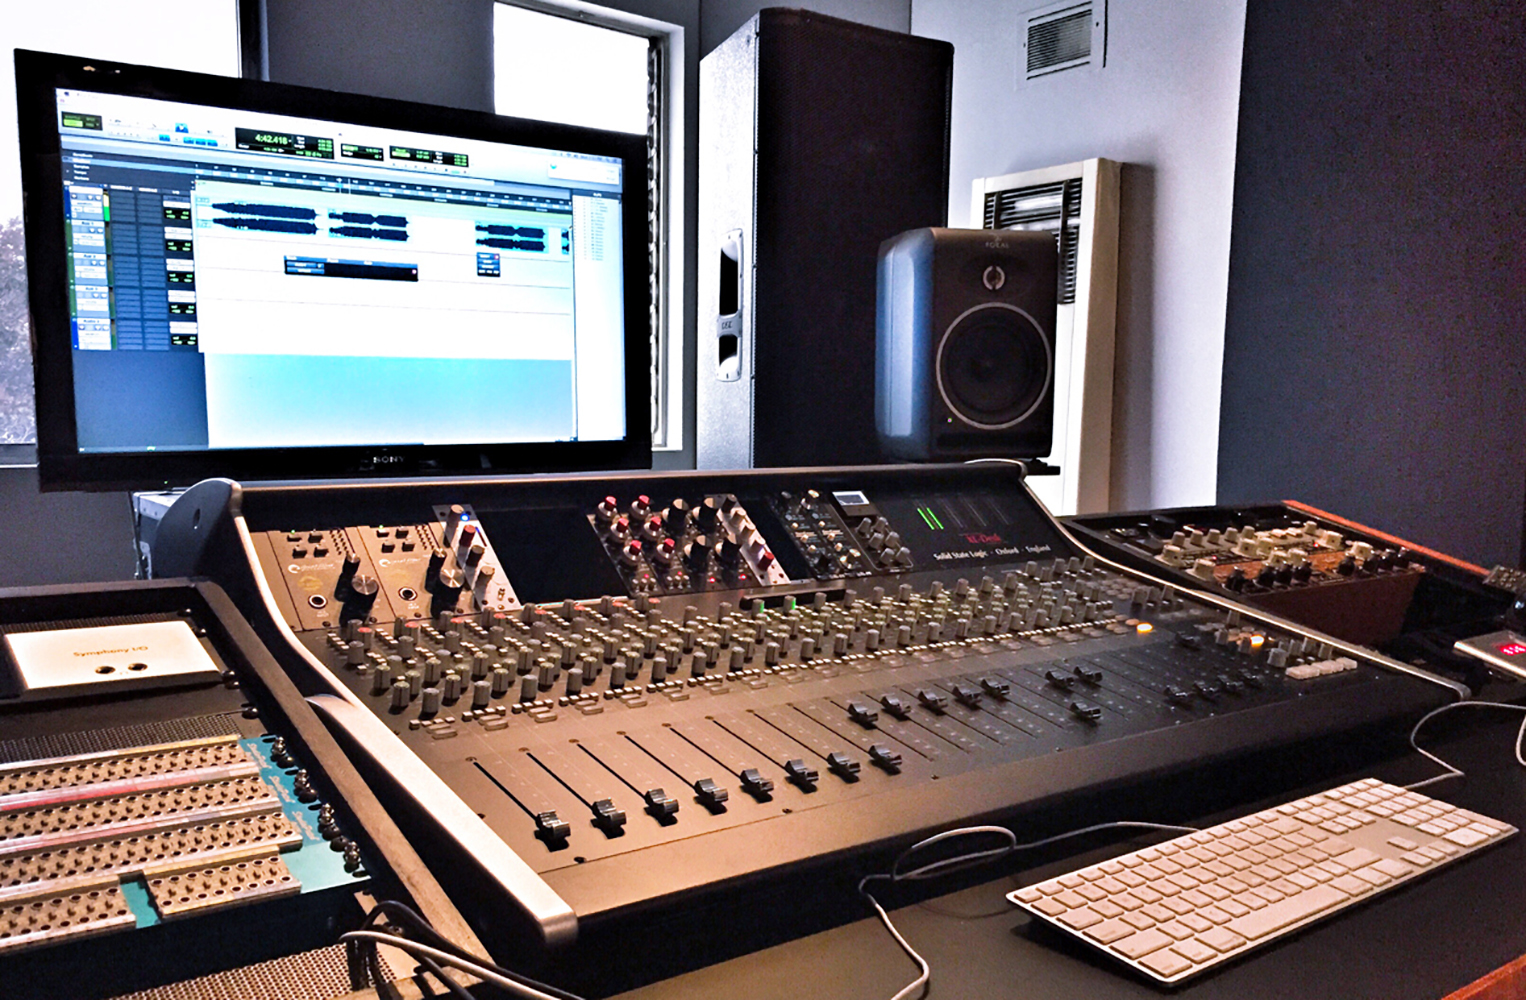 Ssl Digital Audio Post Production Prospect Solid State Logic Ssl Digital Cameras & Photo